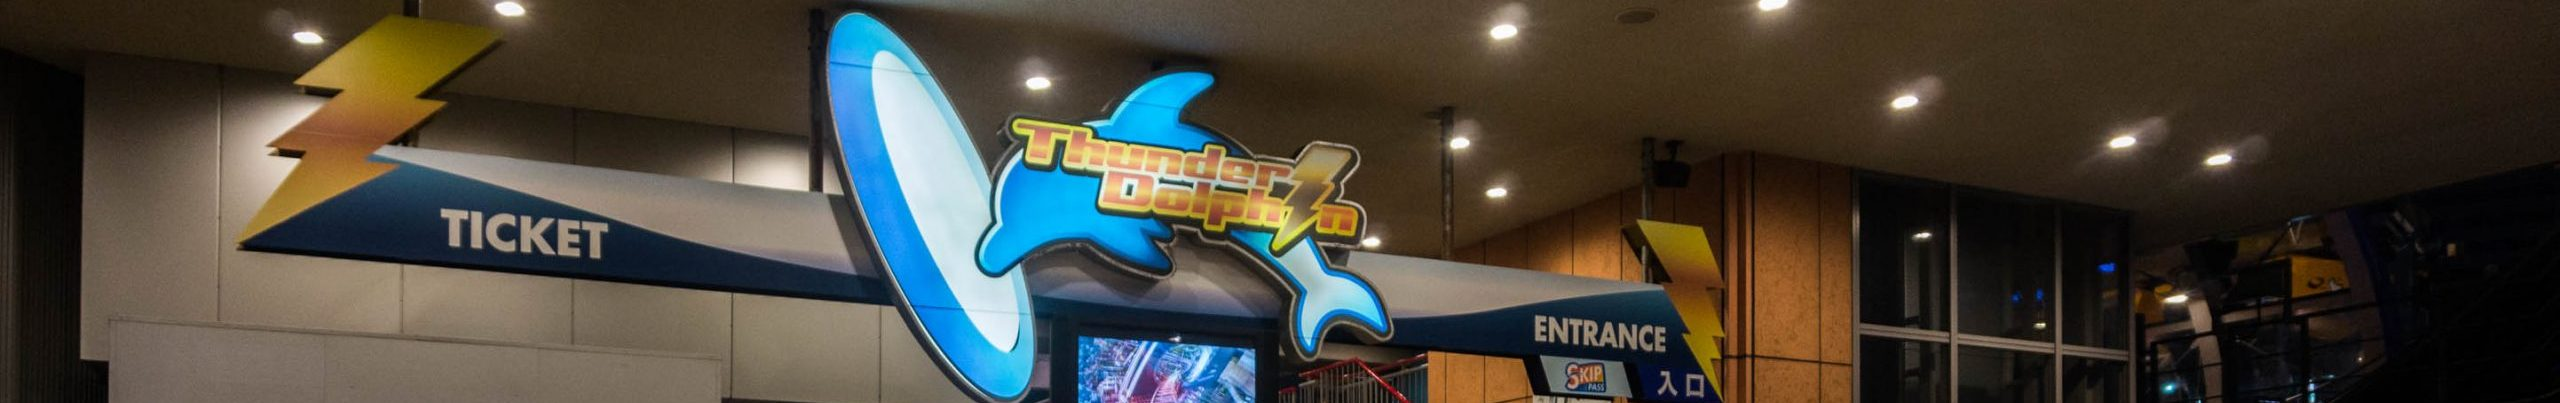 Category: Tokyo Dome City Attractions